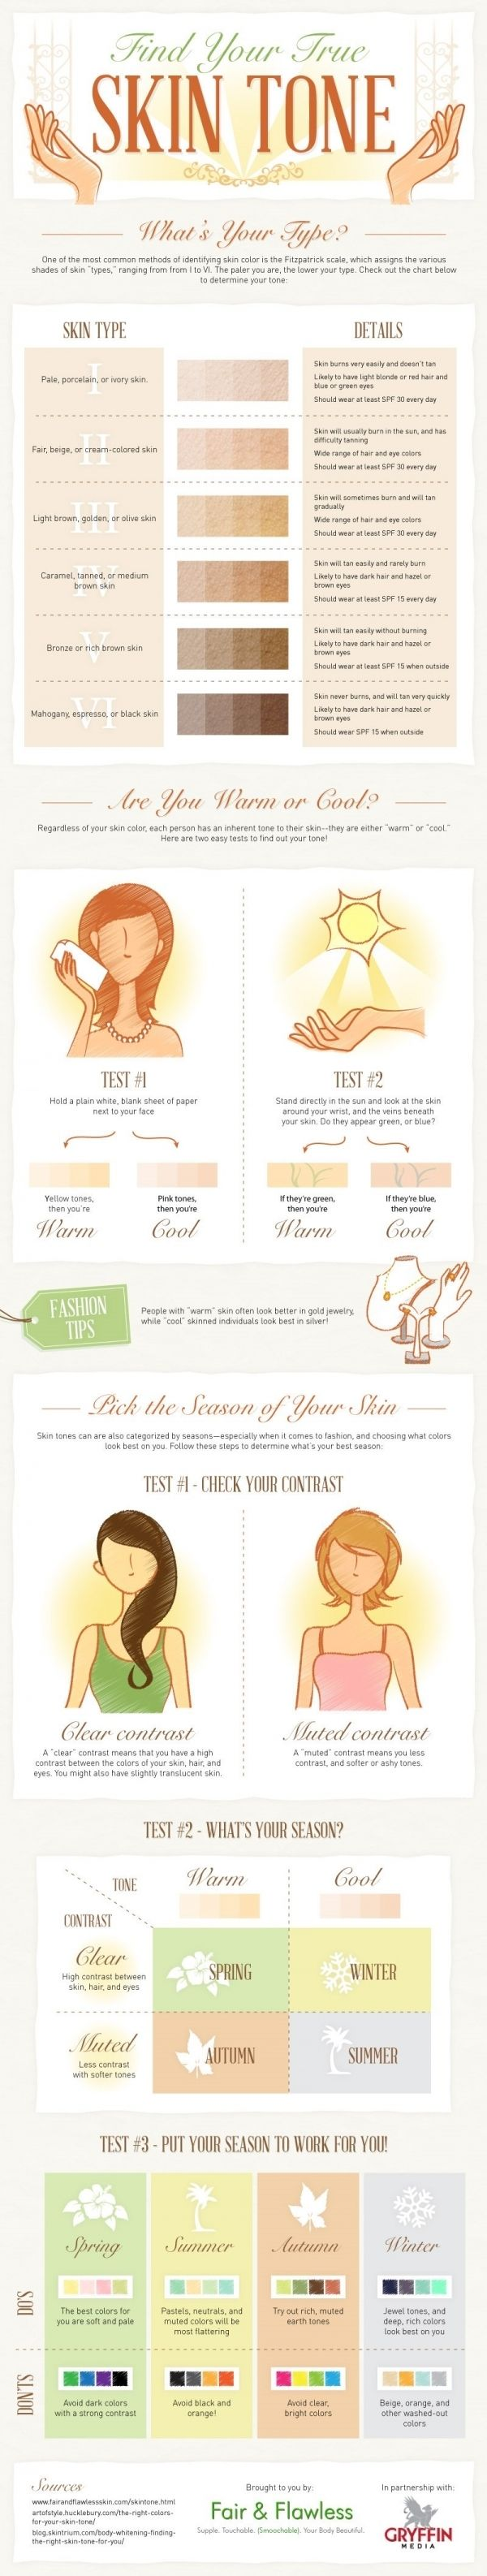 14. How to Find Your True Skin Tone - 38 #Helpful Beauty Infographics to Pore over.